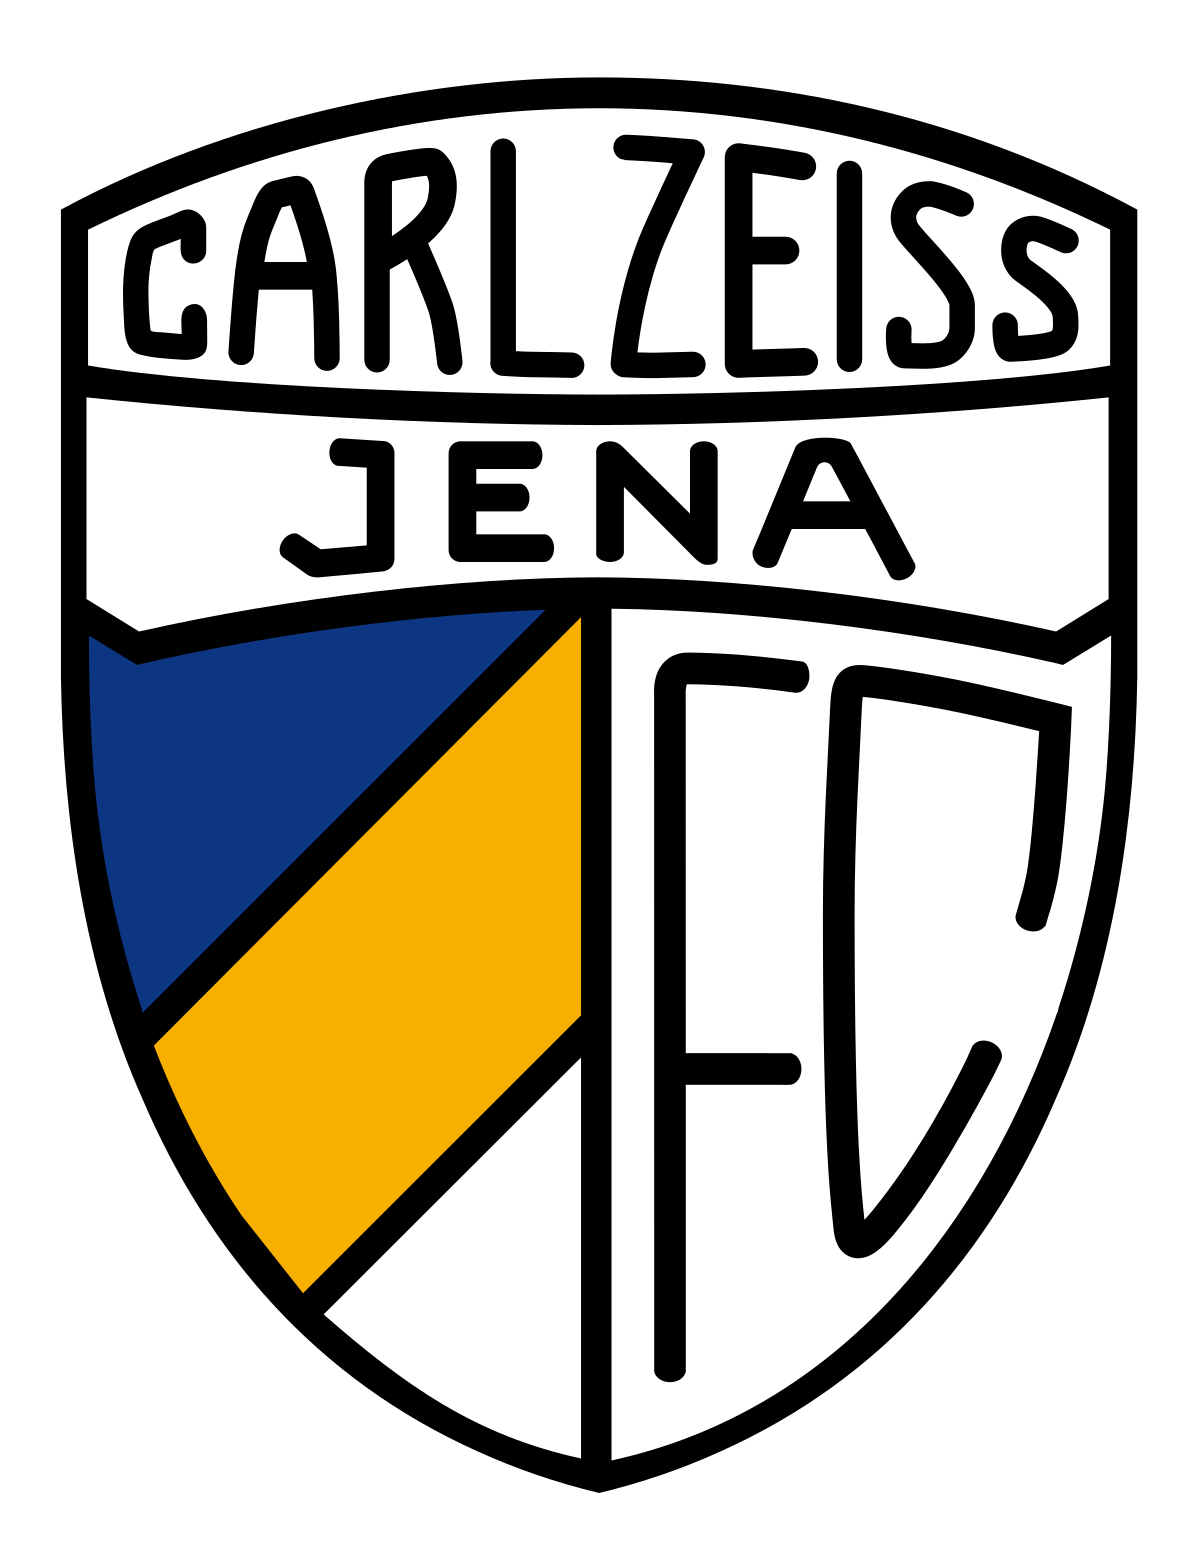 Carl Zeiss Jena team logo